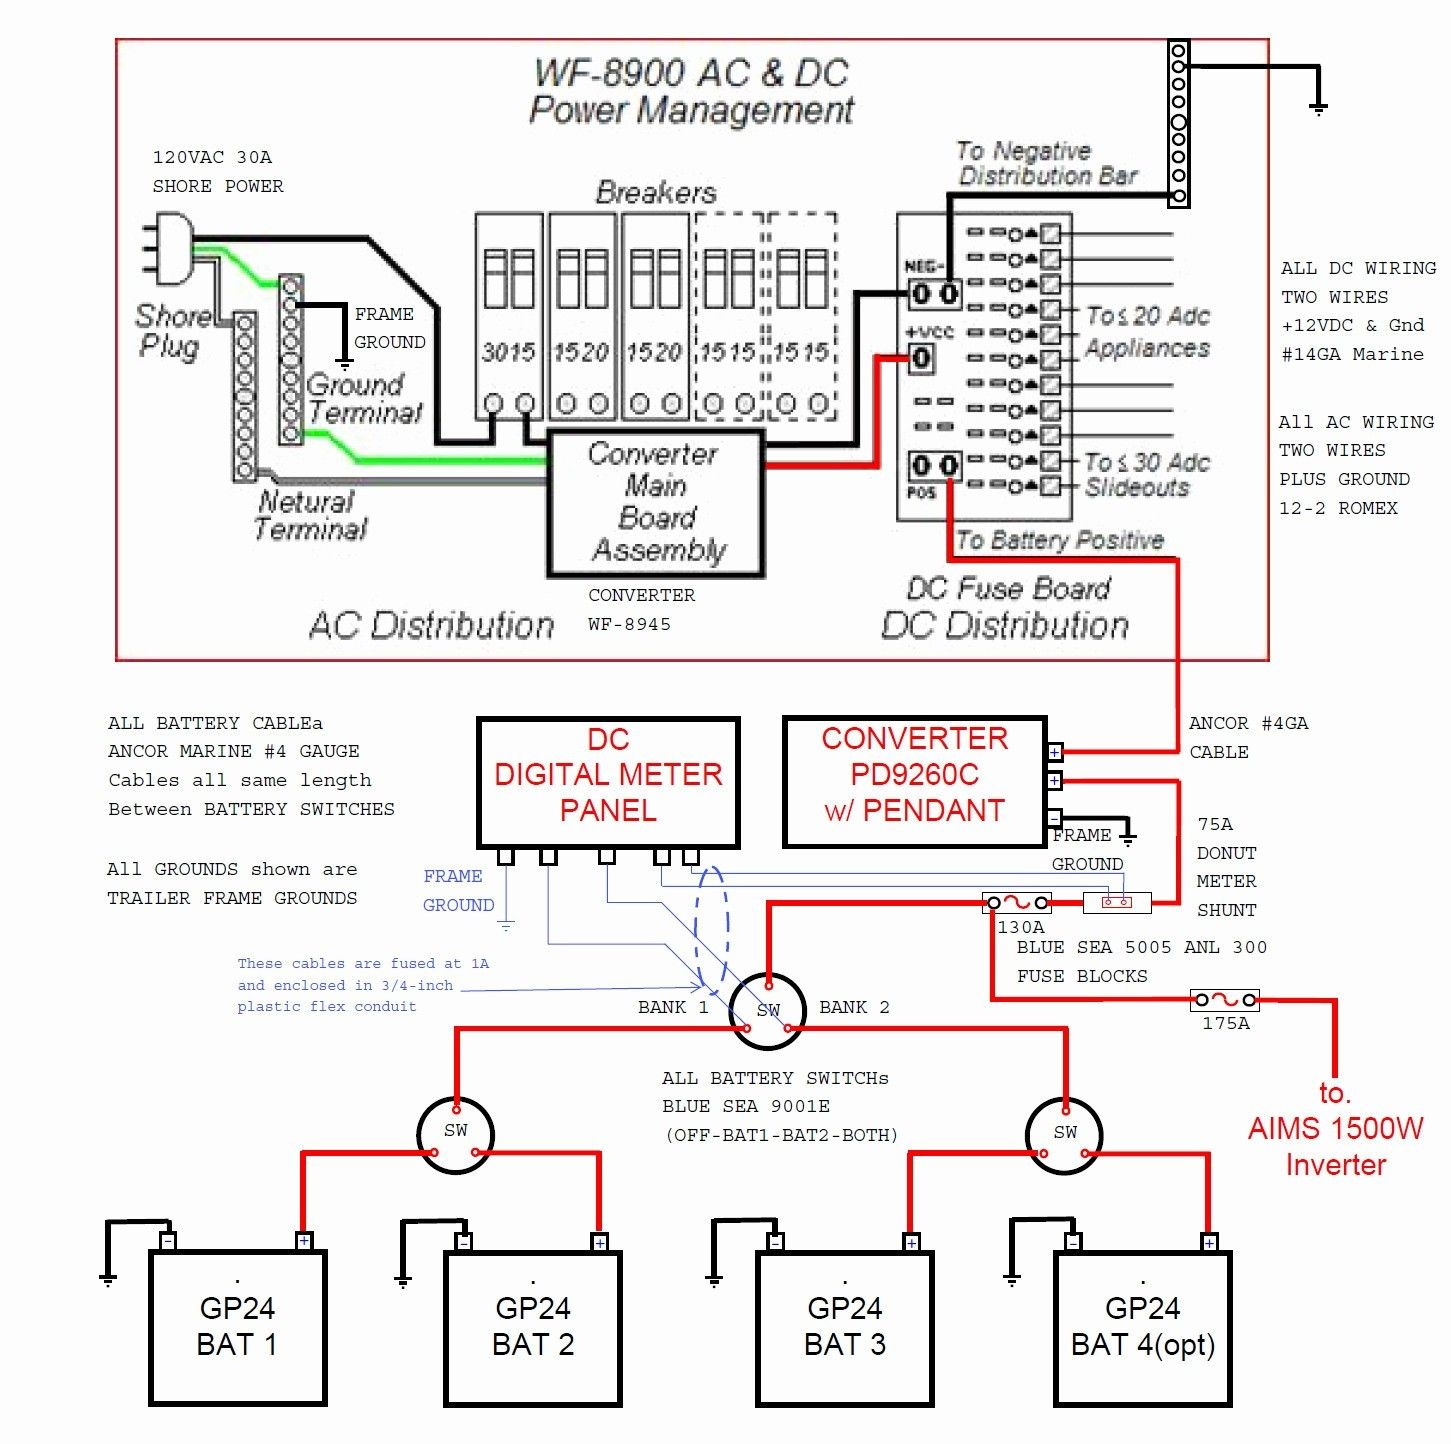 50 amp rv electrical wiring diagram wiring diagram30 amp rv plug wiring diagram inspirational wiring diagram [ 1451 x 1444 Pixel ]